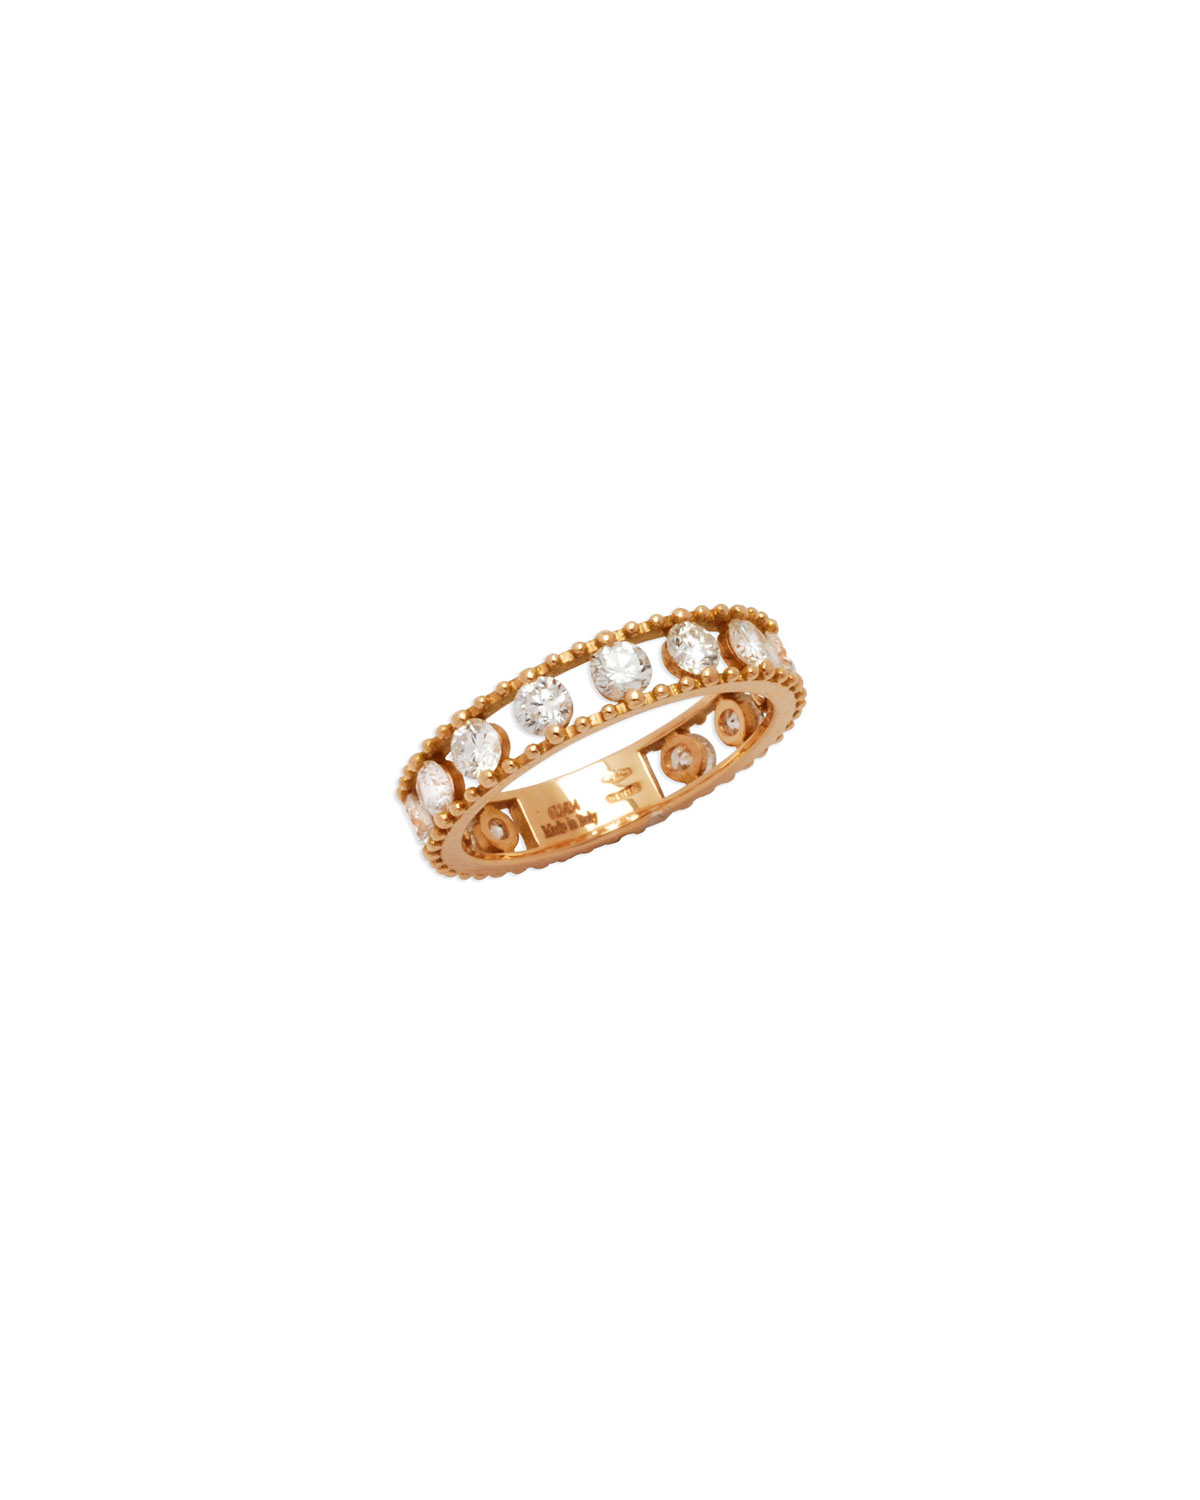 Staurino Fratelli Moresca Armor 18k Rose Gold & Diamond Long Hinged Ring Il4xEJL1fm